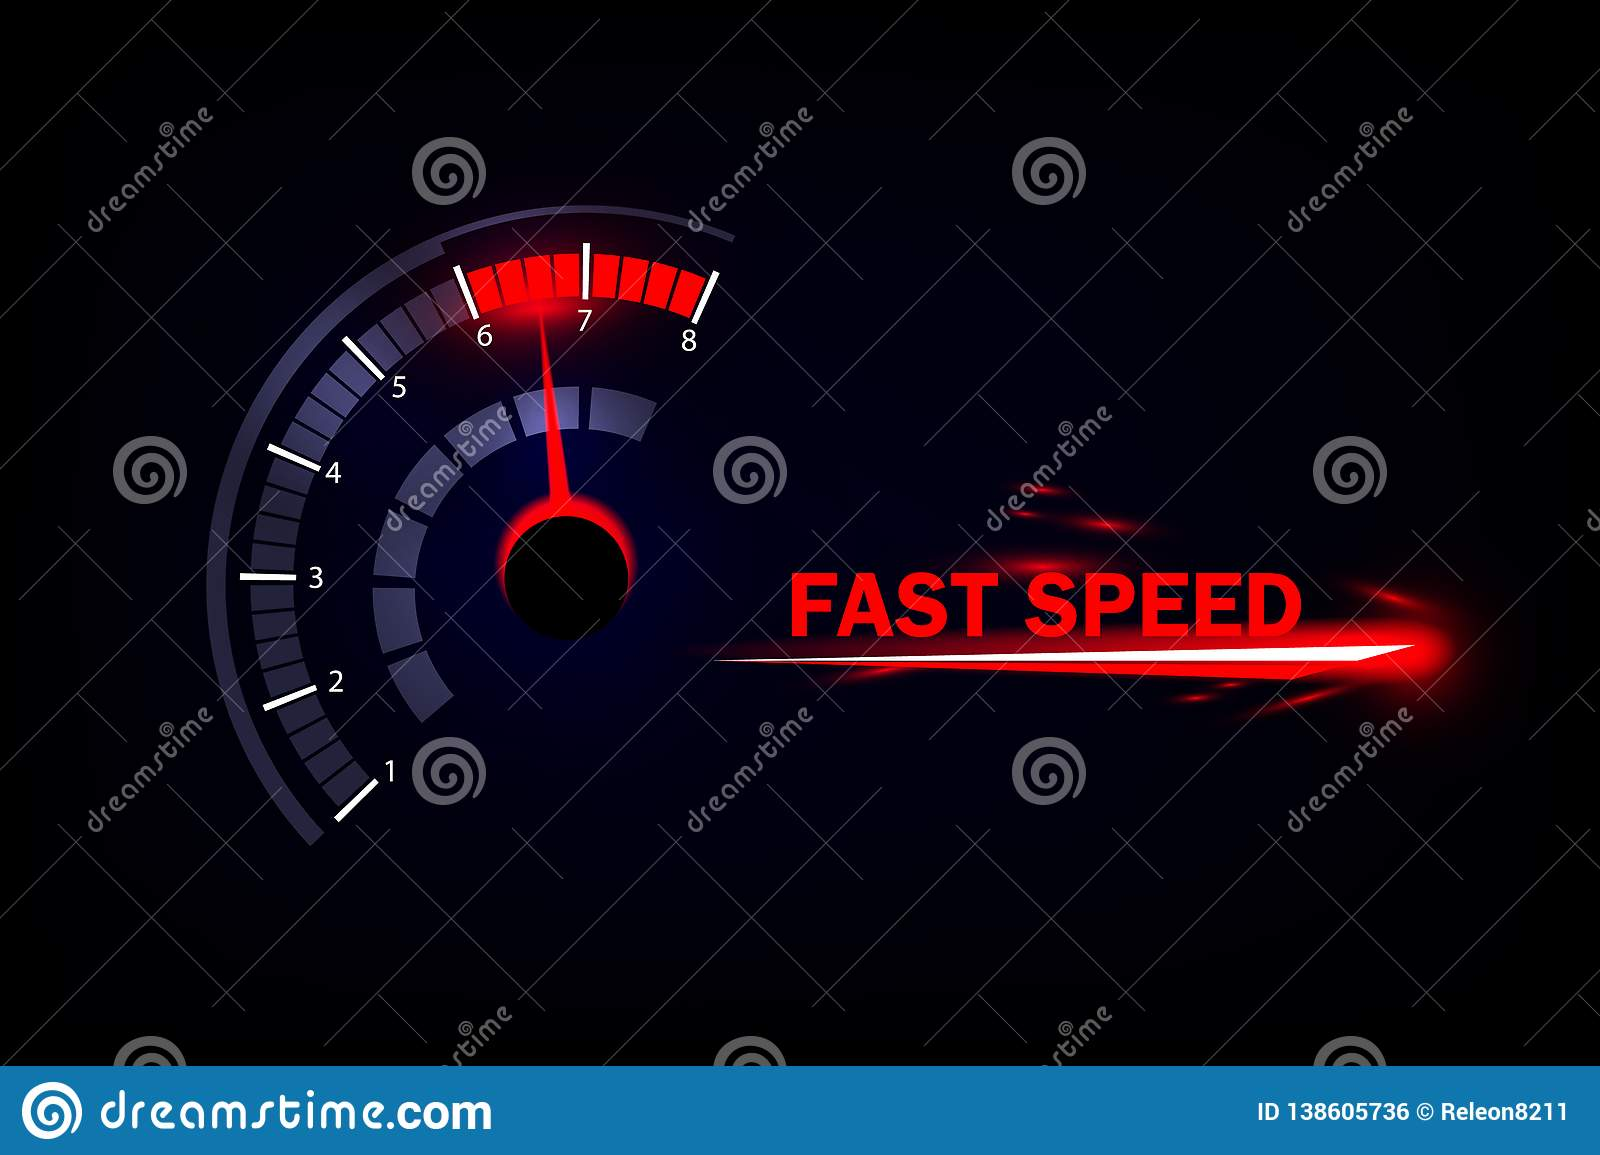 Speed motion background with fast speedometer car.